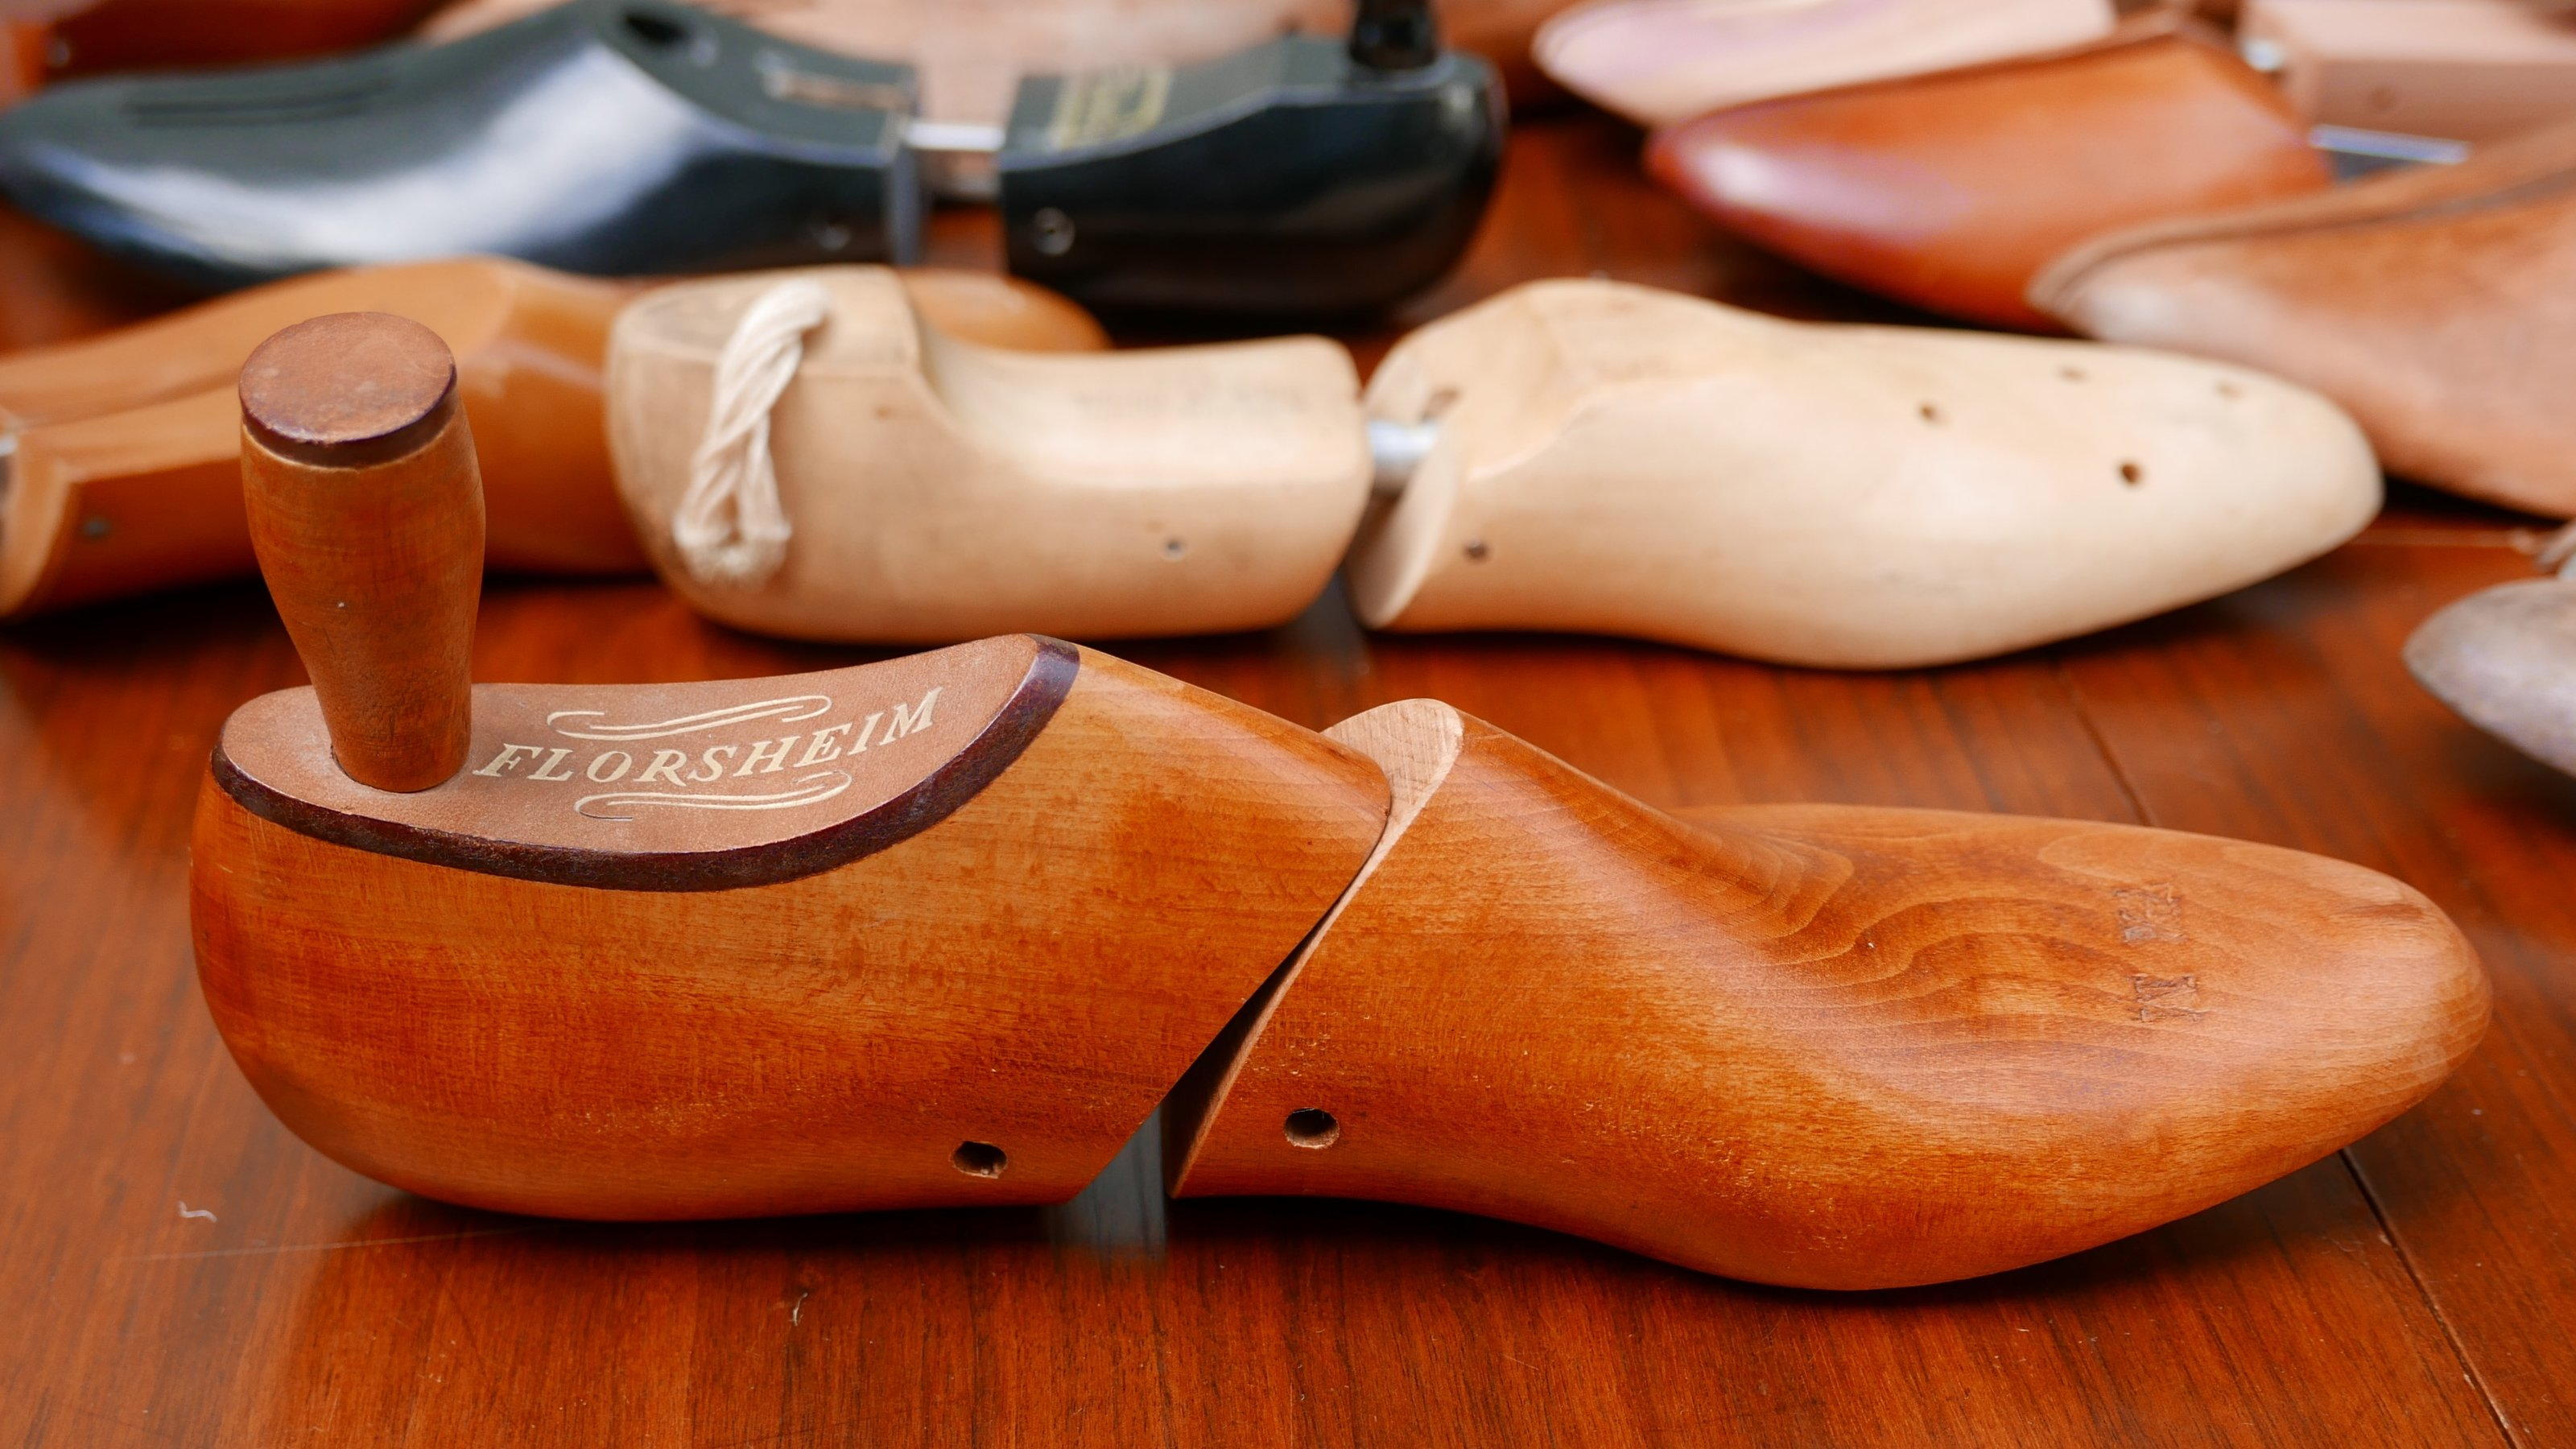 Florsheim Shoe Trees